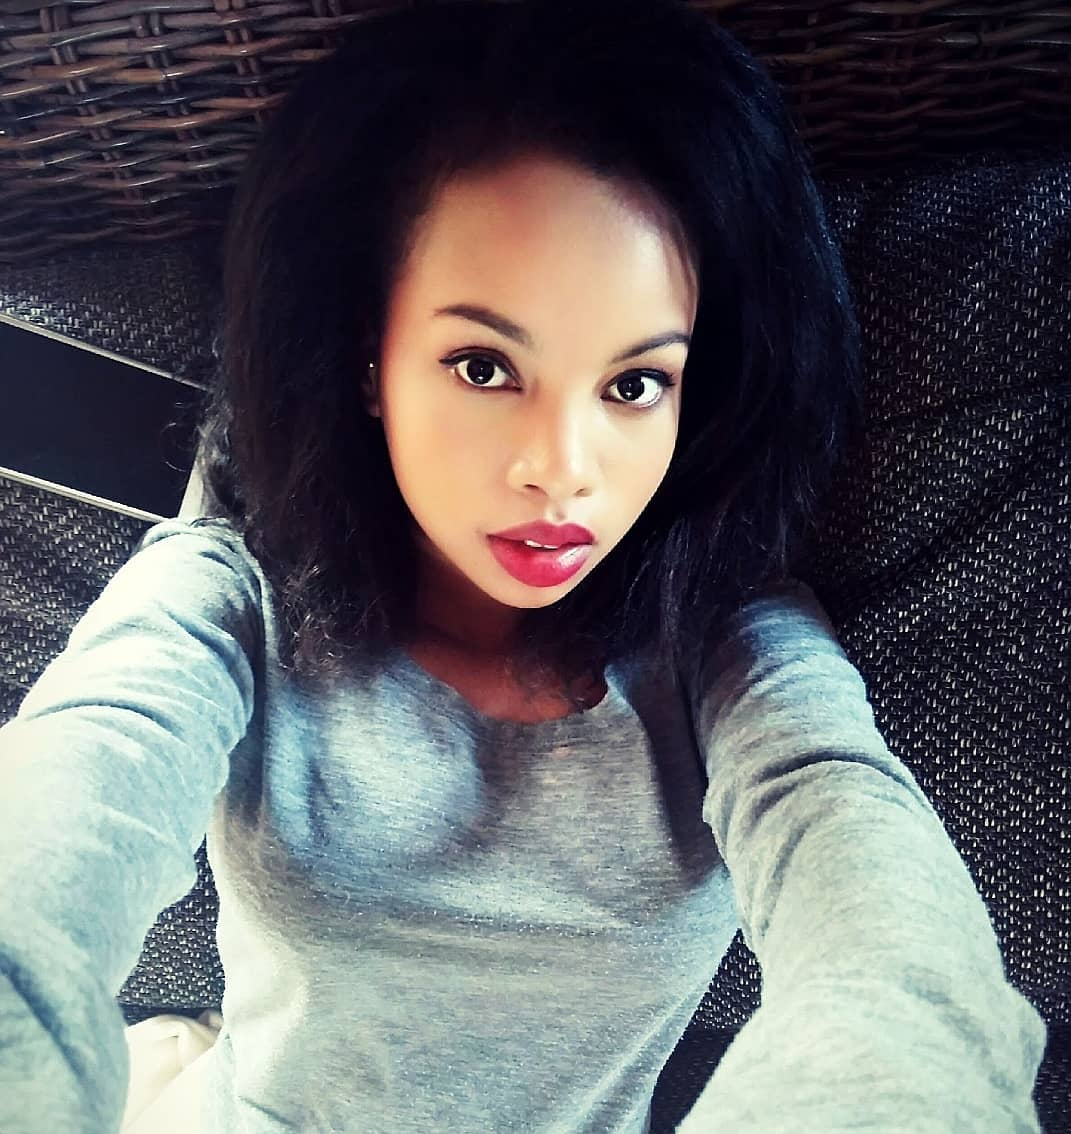 Brenda Wairimu 1 - Brenda Wairimu at 30 looks better than most 20-year-olds